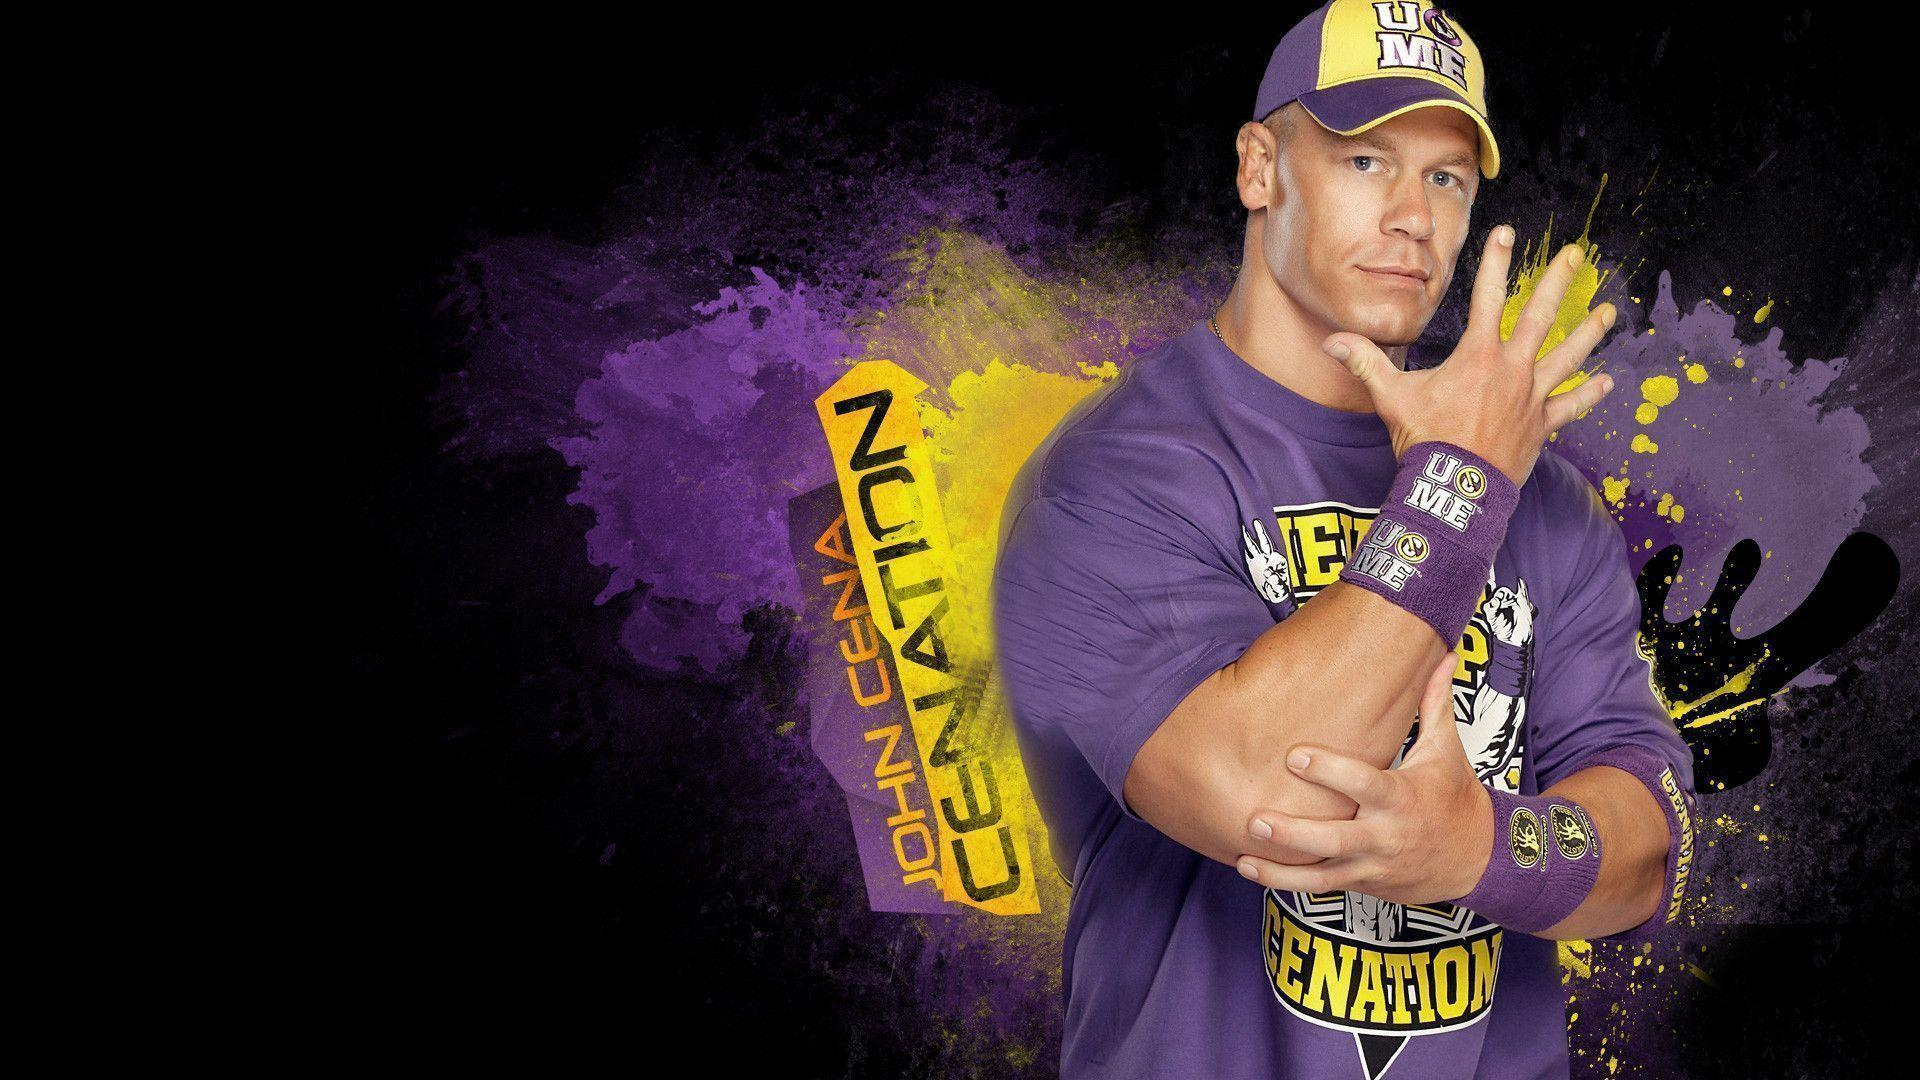 John Cena Purple Wallpaper Desktop #4174 Wallpaper | Wallpaper ...